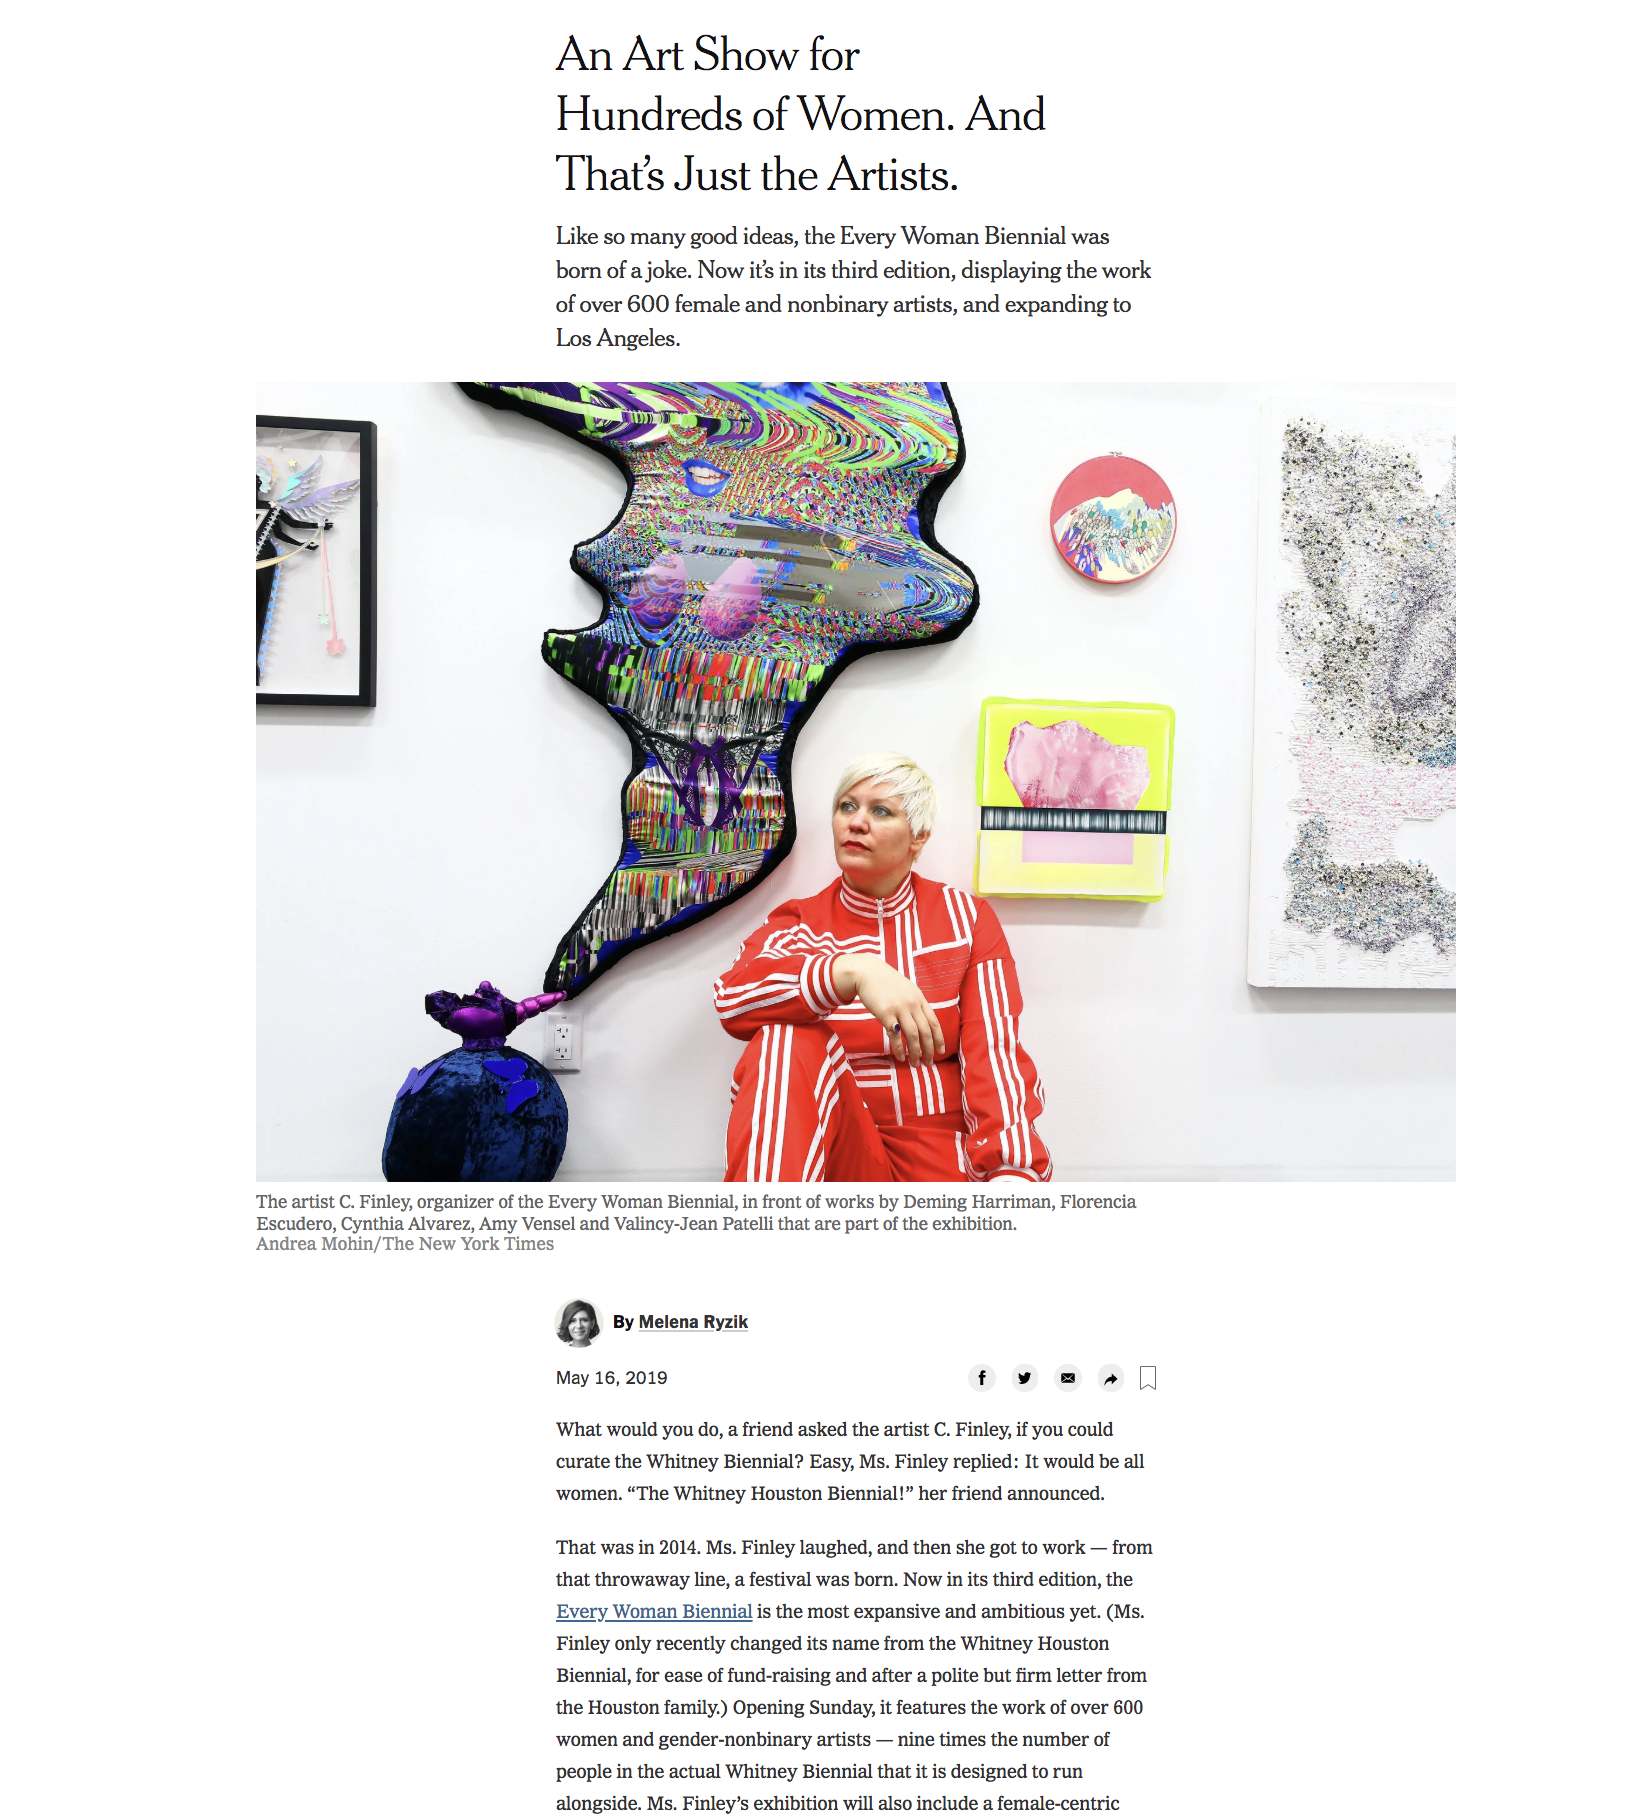 new york times article for Every Woman Biennial.png